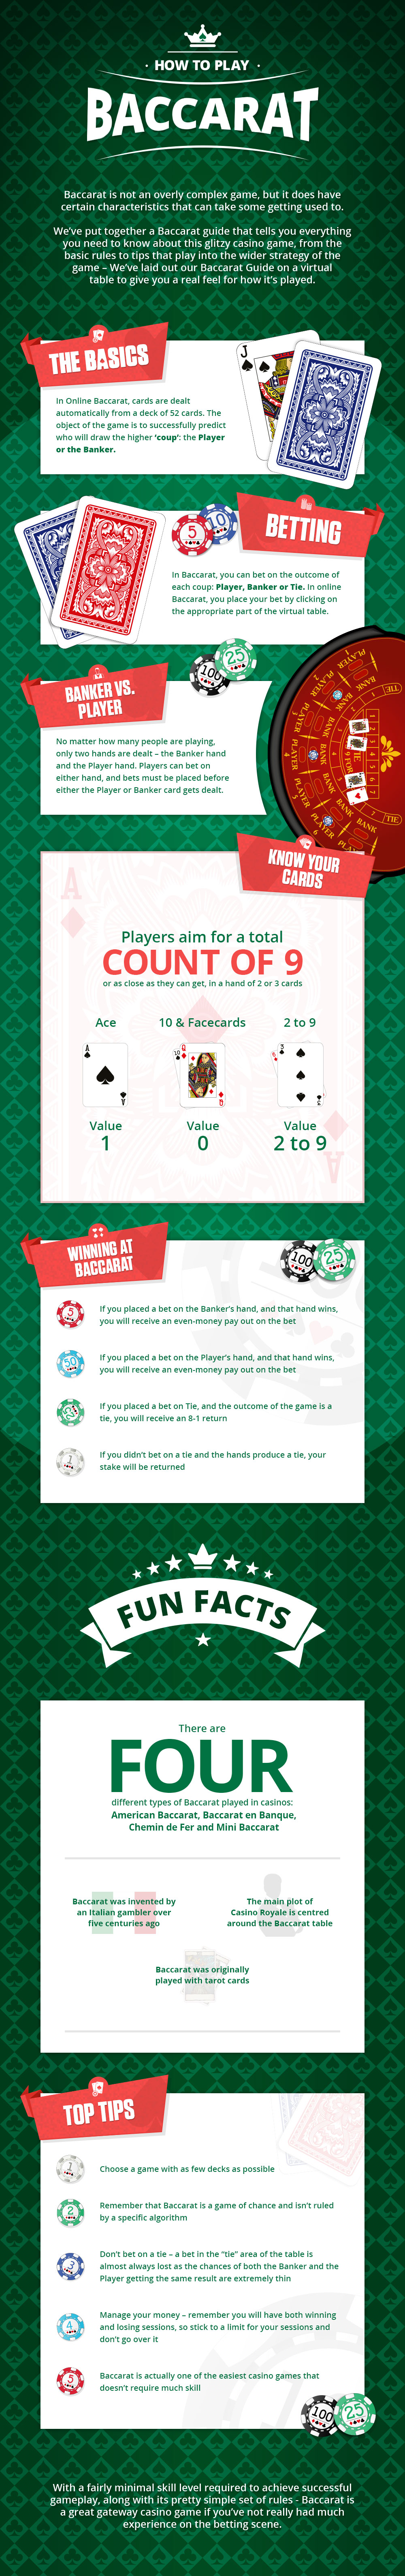 Infographic: How to Play Baccarat